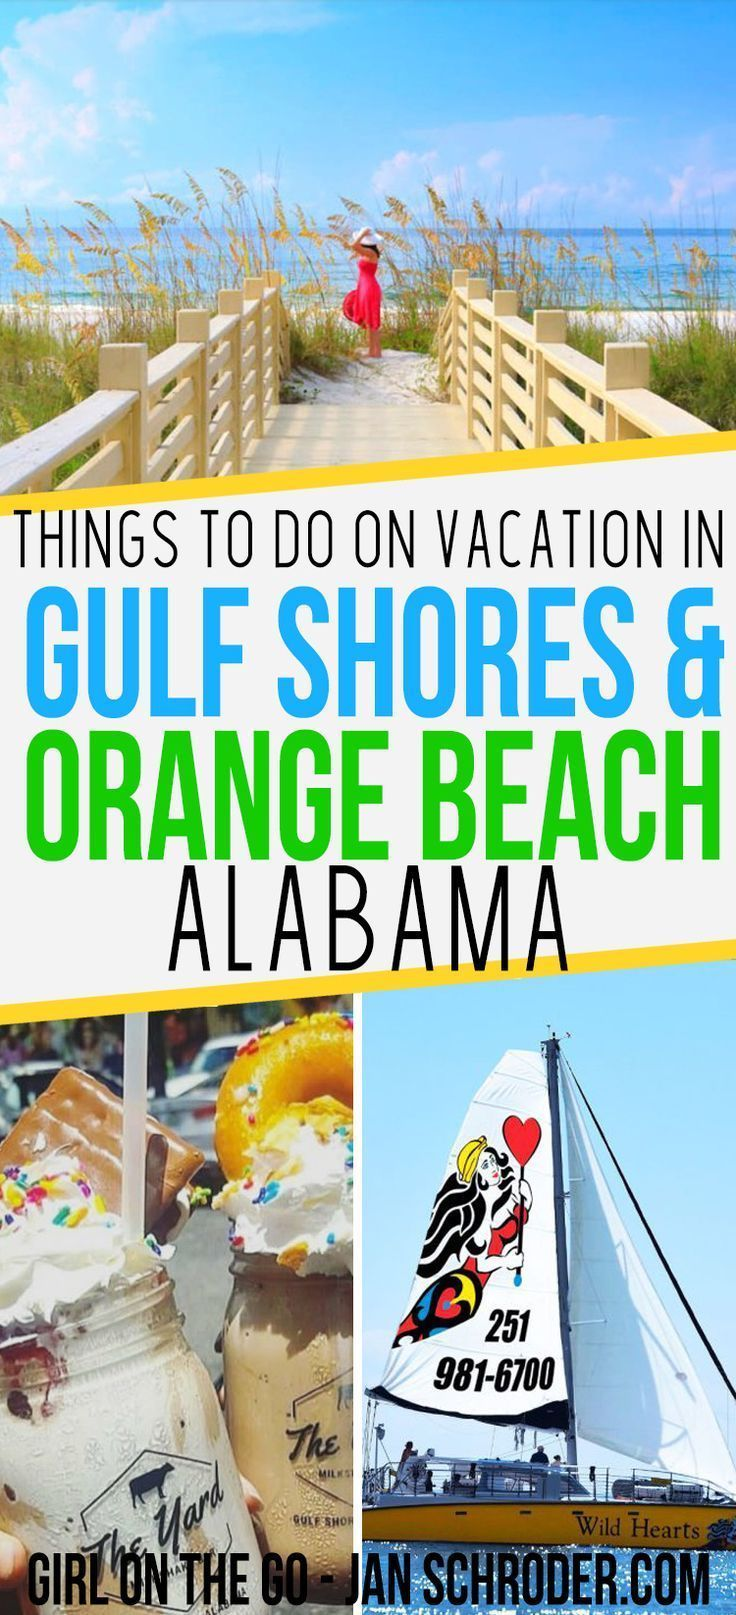 Alabama has so much to offer from delicious sweet treats to beaches and so much more. Click to start planning your vacation to the Gulf Shores and Orange Beach! #usa ***************************************** USA destinations | Gulf Shores Alabama | Gulf Shores vacation | Gulf Shores restaurants | Orange Beach Alabama | Orange Beach Alabama things to do in | Alabama travel | Alabama destinations #TravelDestinationsUsaSpringBreak